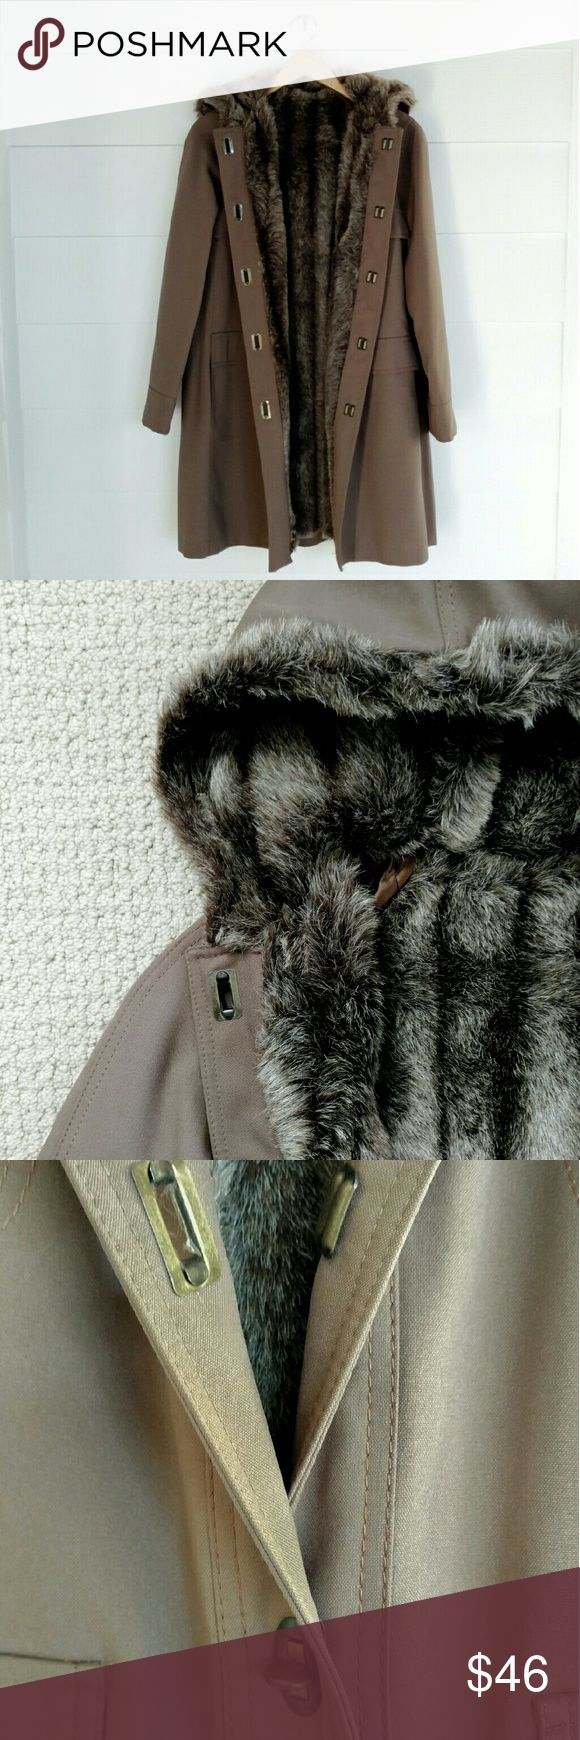 Vintage Faux Fur Coat Vintage coat with faux-fur lining, which I believe is designed for all weather. Made in the USA by the International Ladies Garment Workers Union, one of the first US unions with primarily female membership. Size is listed as 9/10, I think it fits between an 8-10. Can take measurements if you're interested! A few small picks on the outside that I really had to look for, and some picks on the inside lining near the shoulder. A little musty, could use a dry clean but…